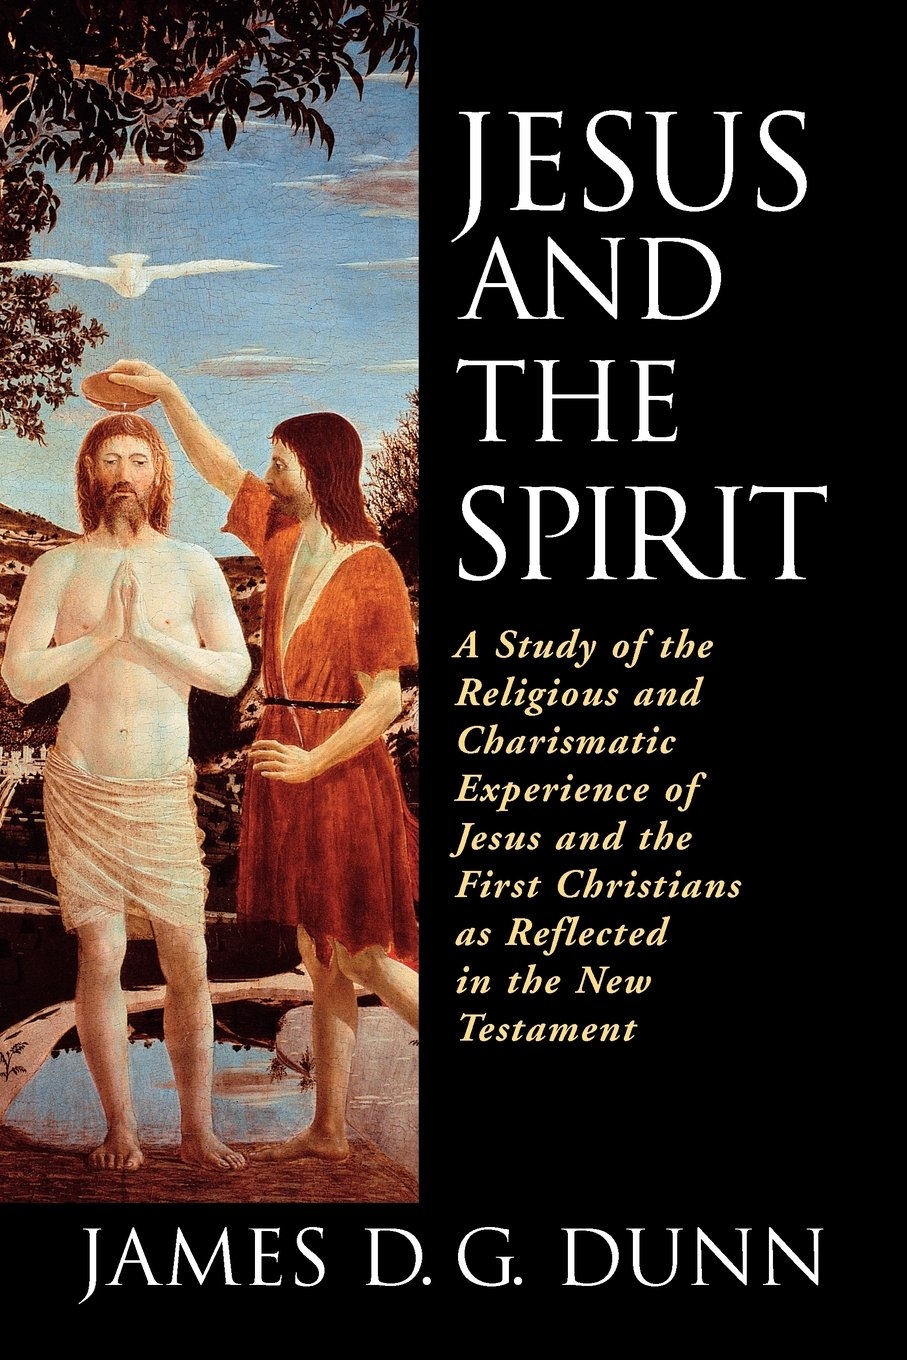 Jesus and the Spirit: A Study of the Religious and Charismatic Experience of Jesus and the First Christians as Reflected in the New Testament, Dunn, James D. G.